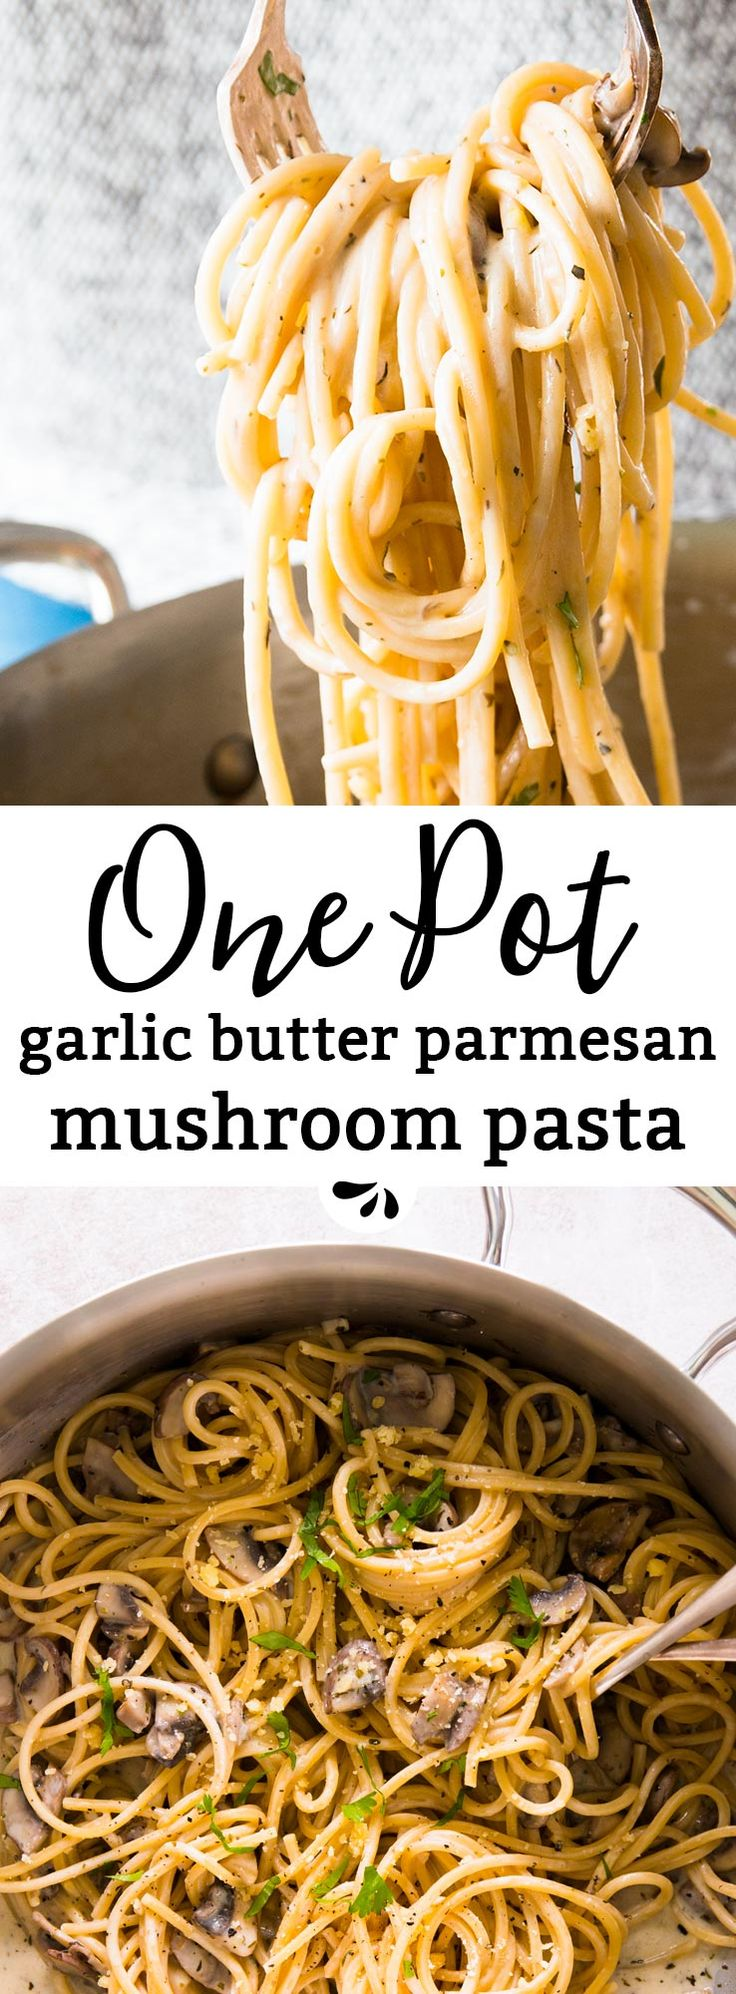 This one pot garlic butter parmesan mushroom pasta is a simple weeknight dinner that's ready in less than 30 minutes with barely any effort! Made with spaghetti, mushrooms, dried herbs, garlic, butter and cheese. Quick to prep and on the table in less than 30 minutes, it is sure to please the entire family. Serve it as-is or add some chicken and a side salad with it. This meal works SO great - an absolute go to recipe! via @savorynothings